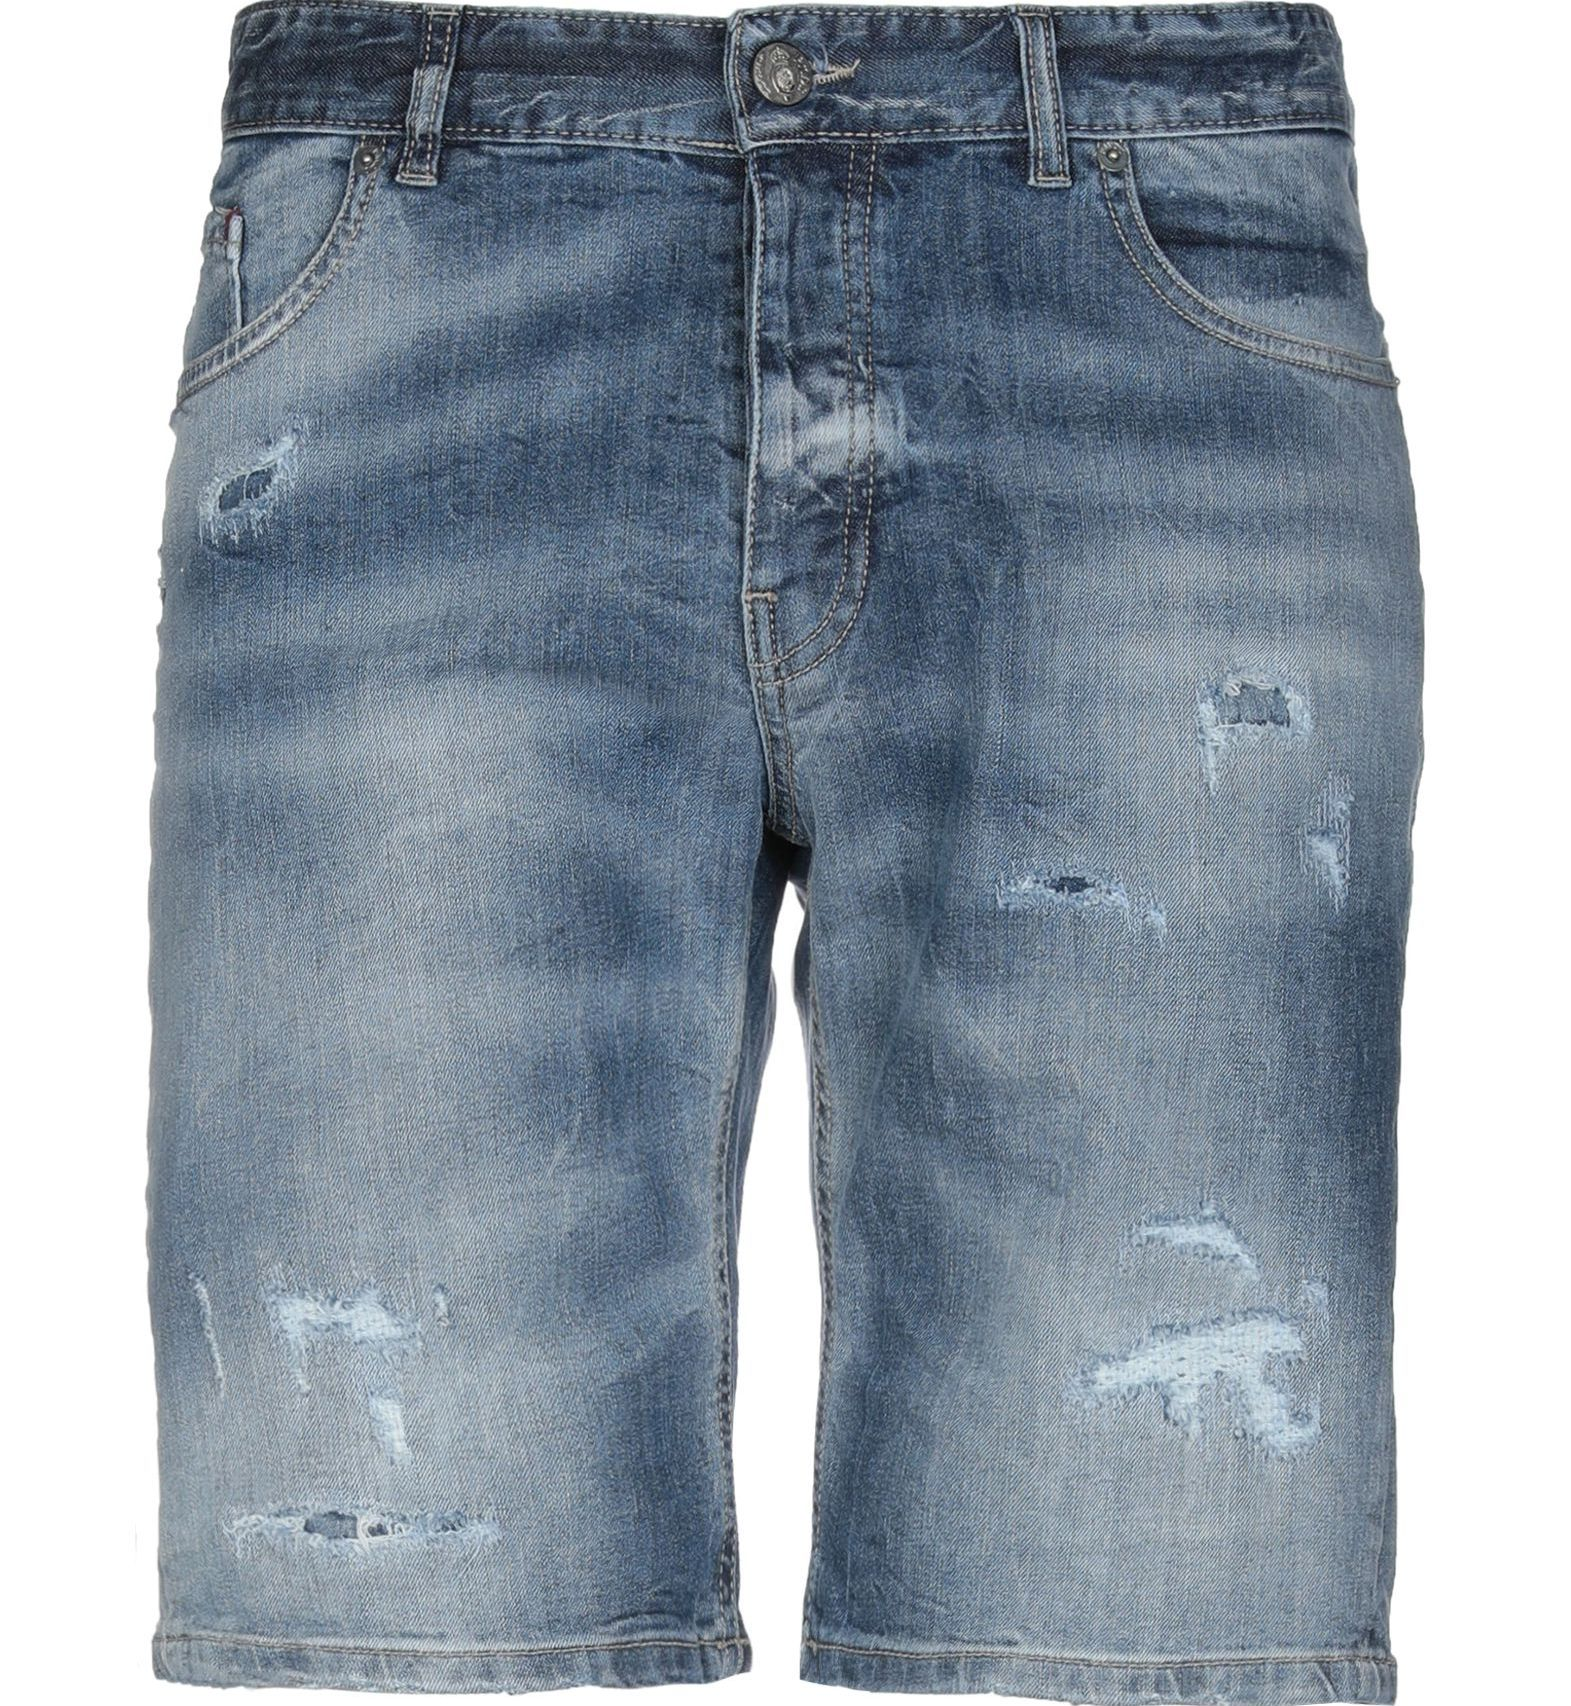 PMDS PREMIUM MOOD DENIM SUPERIOR DENIM Denim βερμούδες